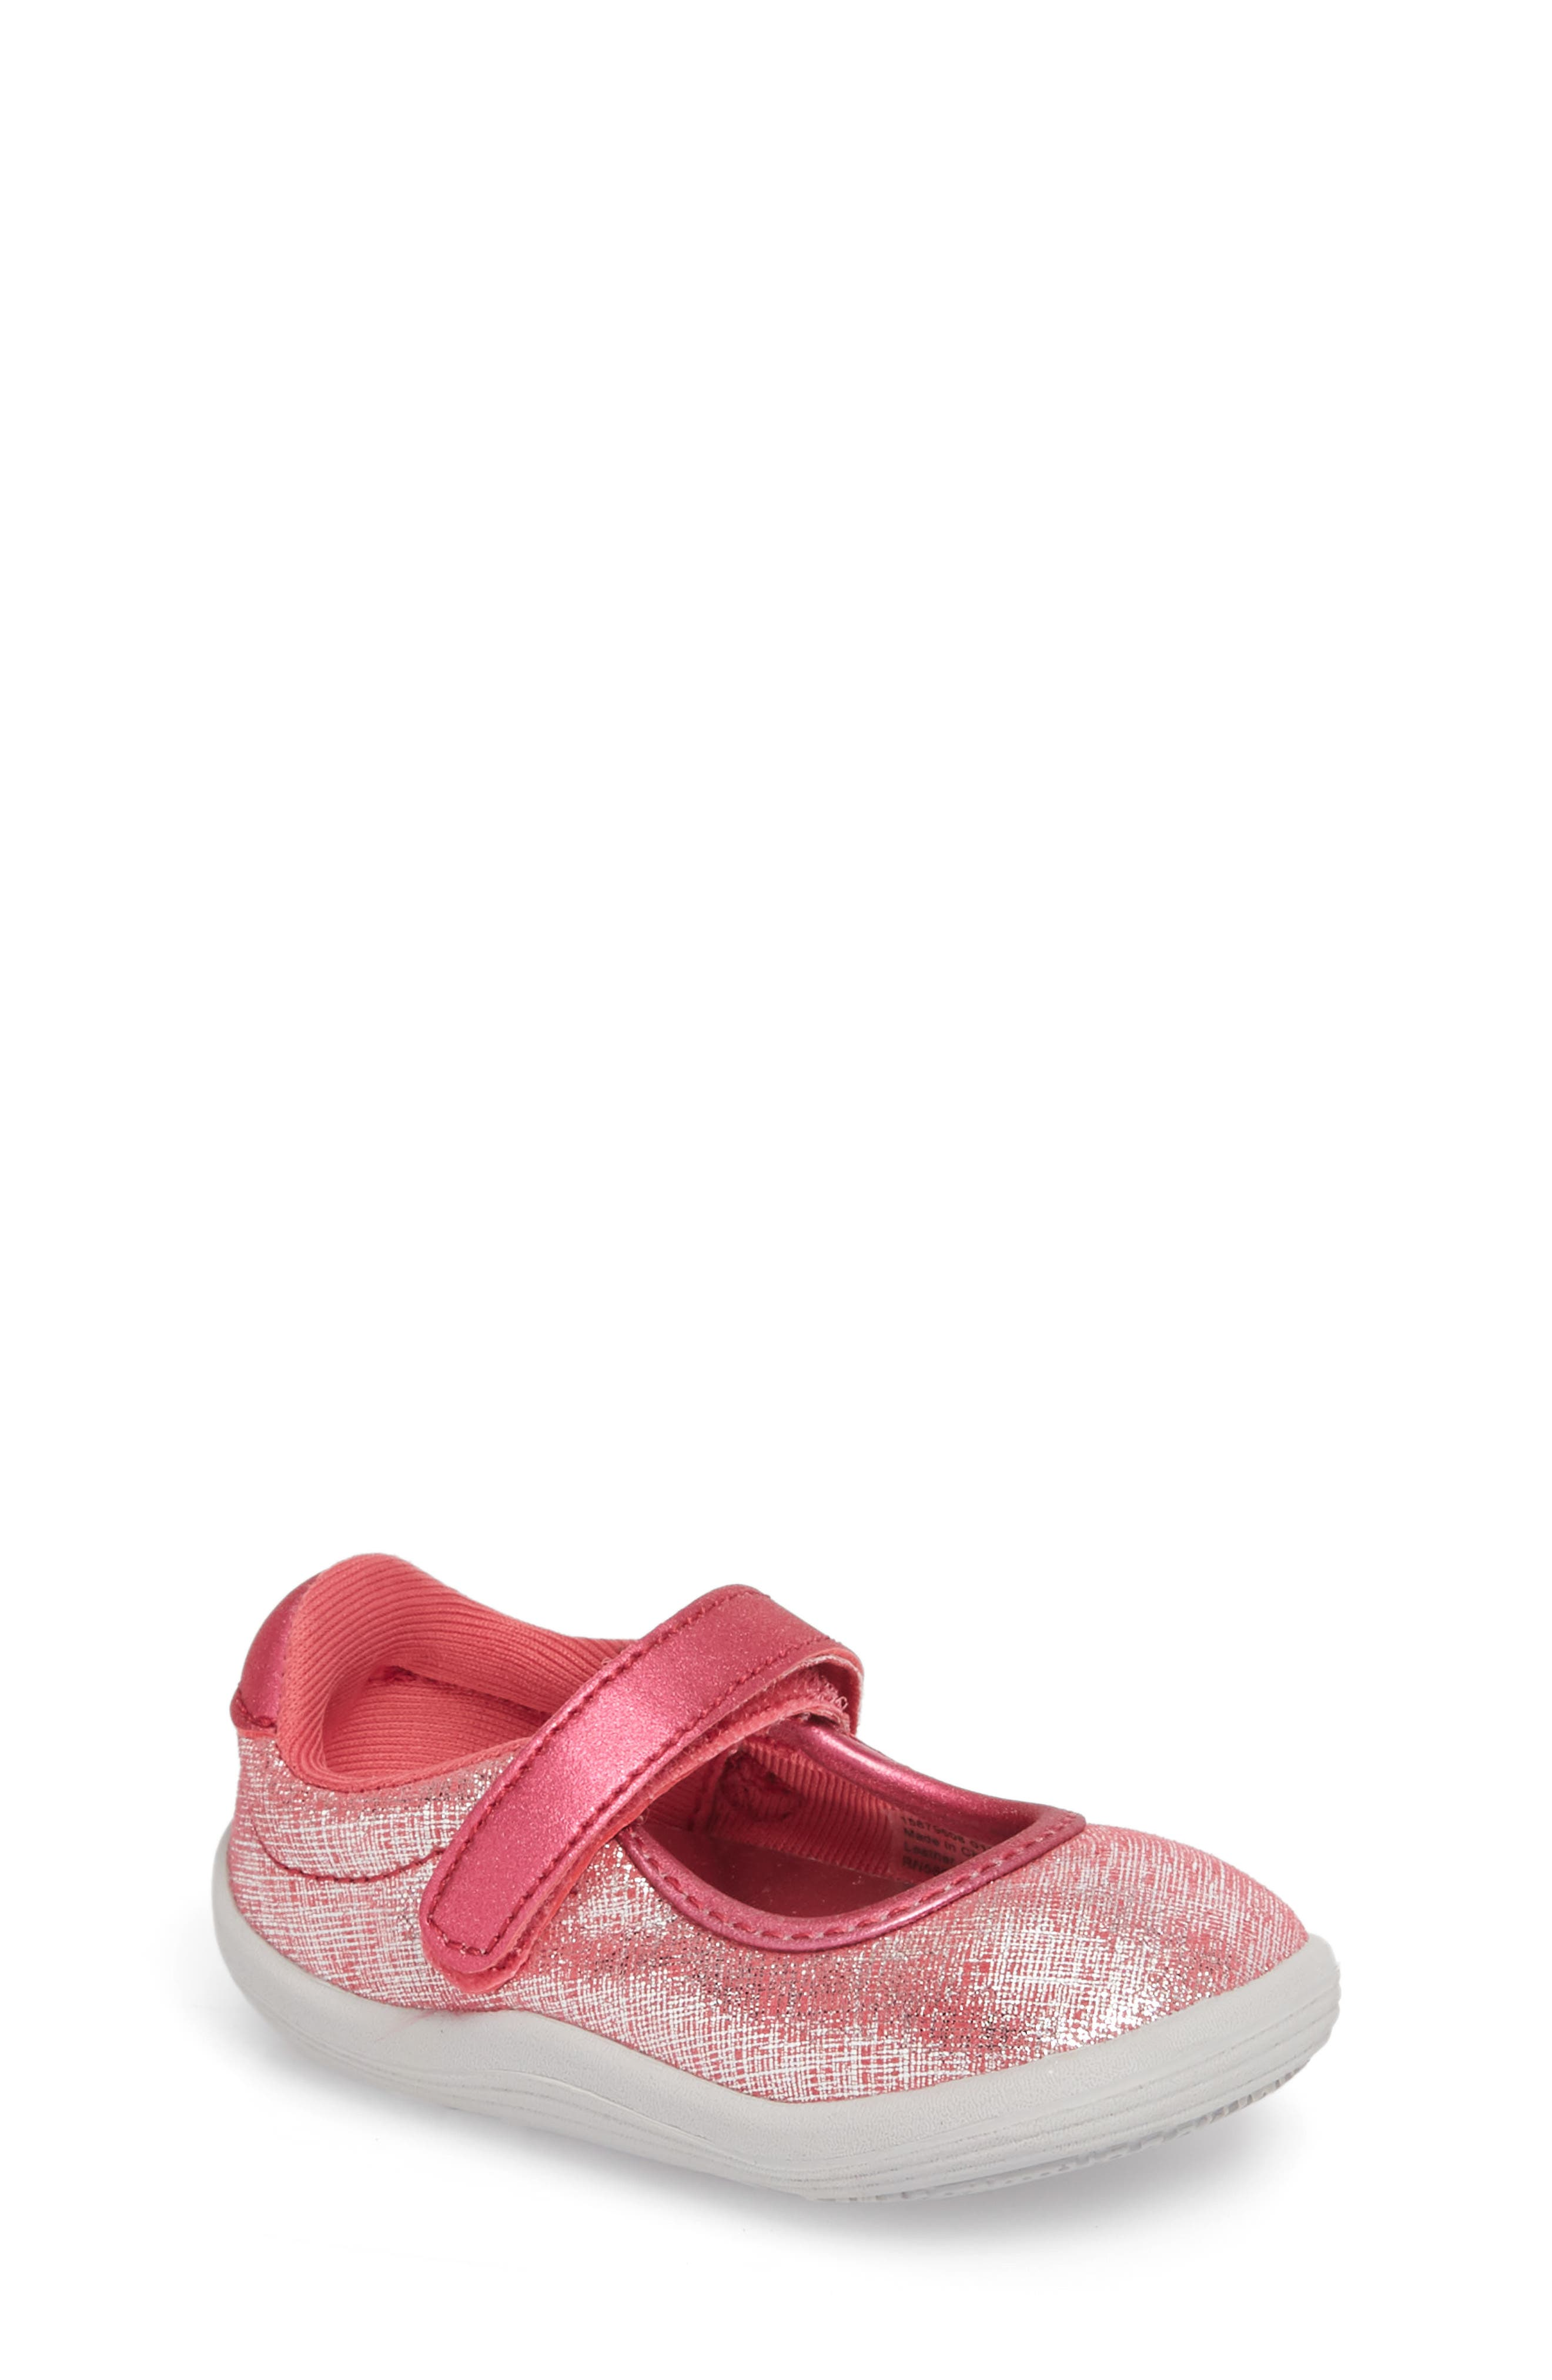 Nora Metallic Mary Jane Sneaker,                             Main thumbnail 1, color,                             Pink Shimmer Leather